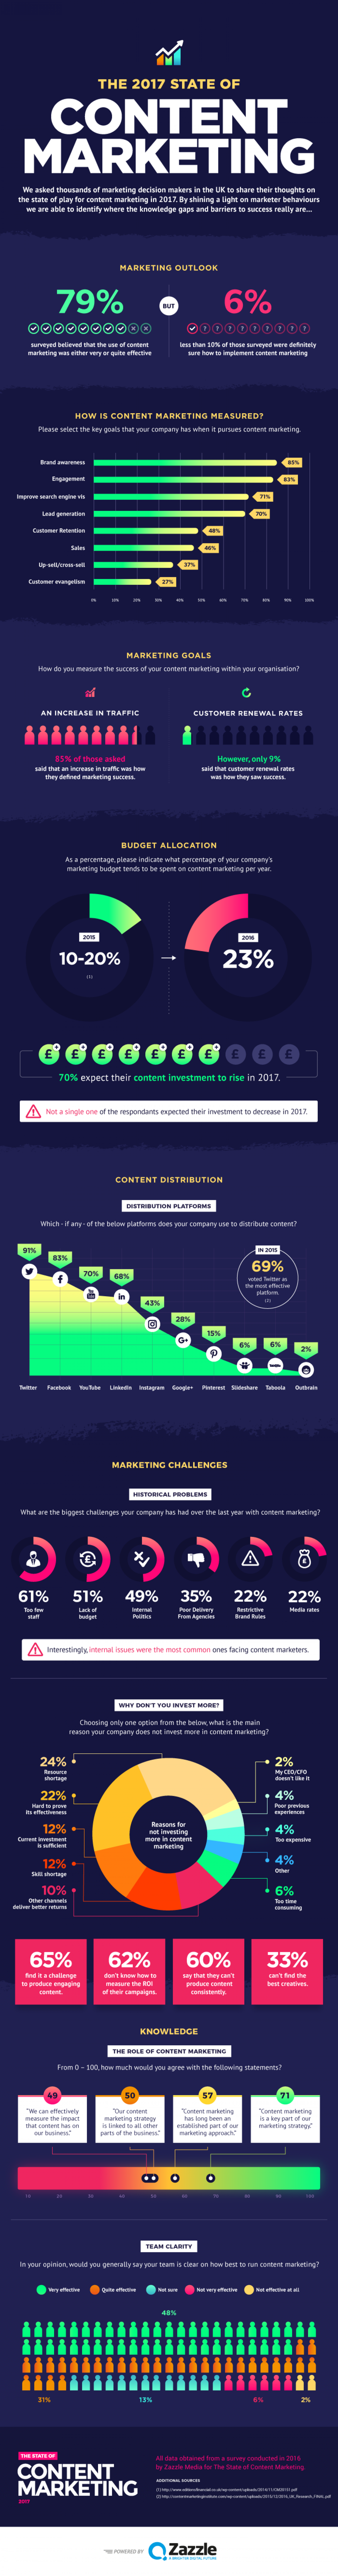 The 2017 State of Content Marketing  Infographic